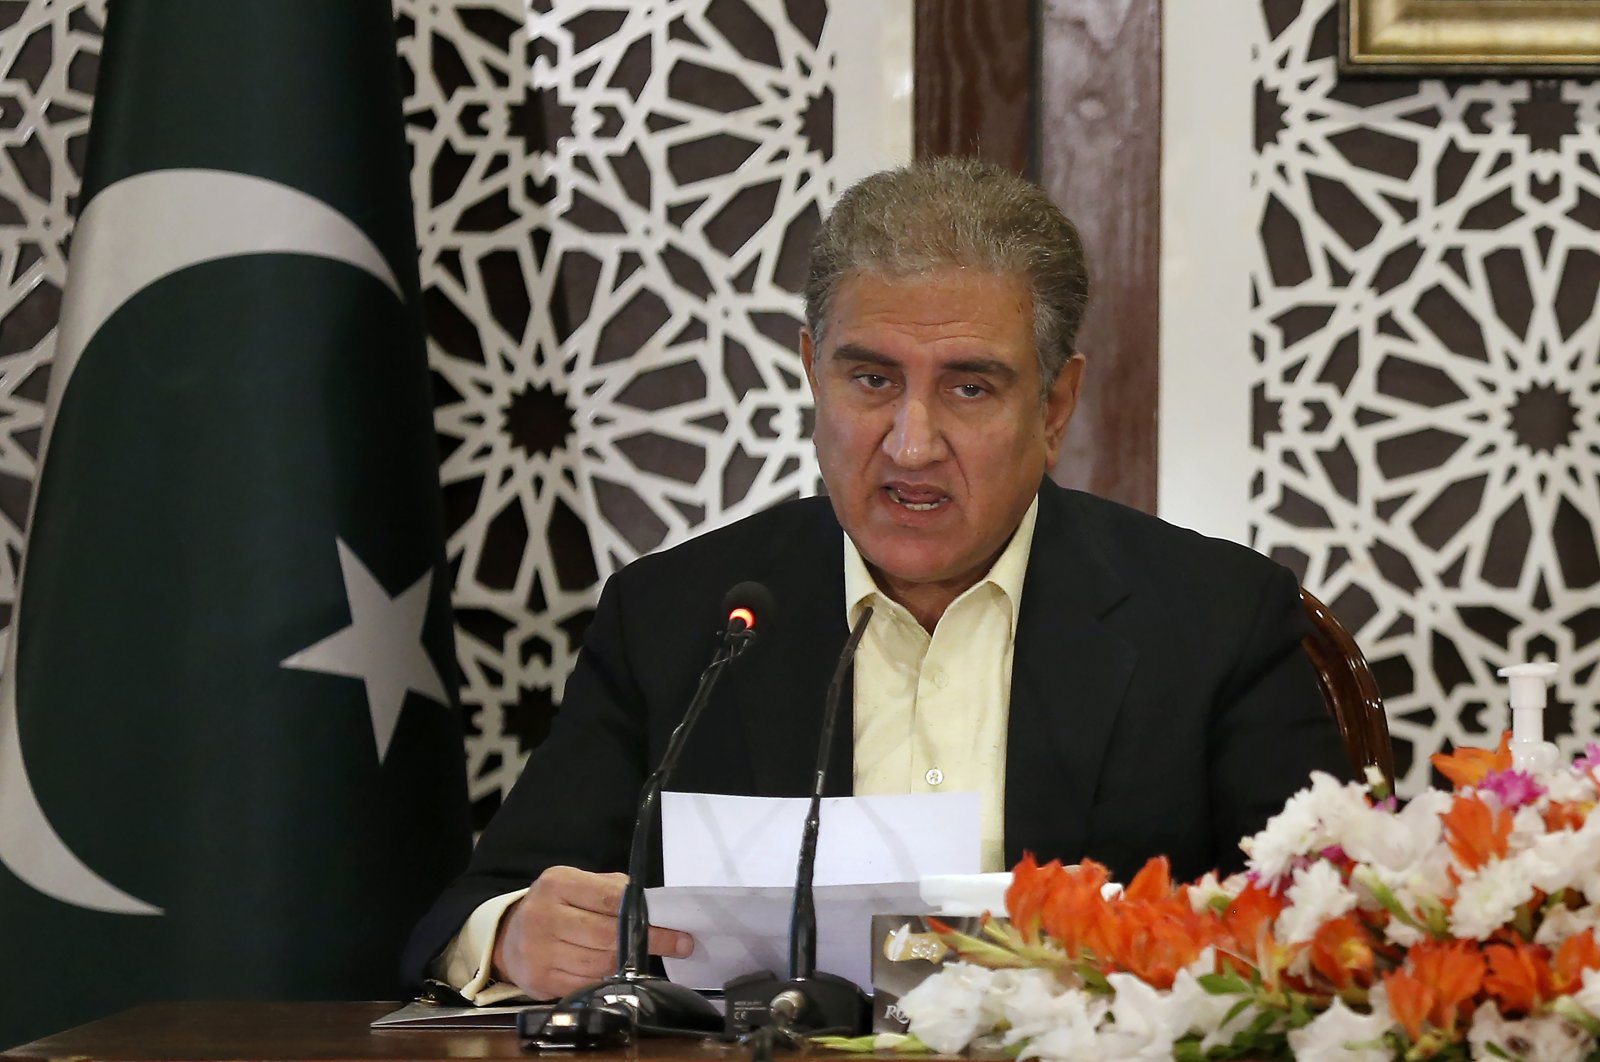 Pakistan's Foreign Minister Shah Mahmood Qureshi briefs the media during a joint press conference with military spokesperson regarding ongoing tension between Pakistan and India, in Islamabad, Pakistan, Nov. 14, 2020. (AP Photo)